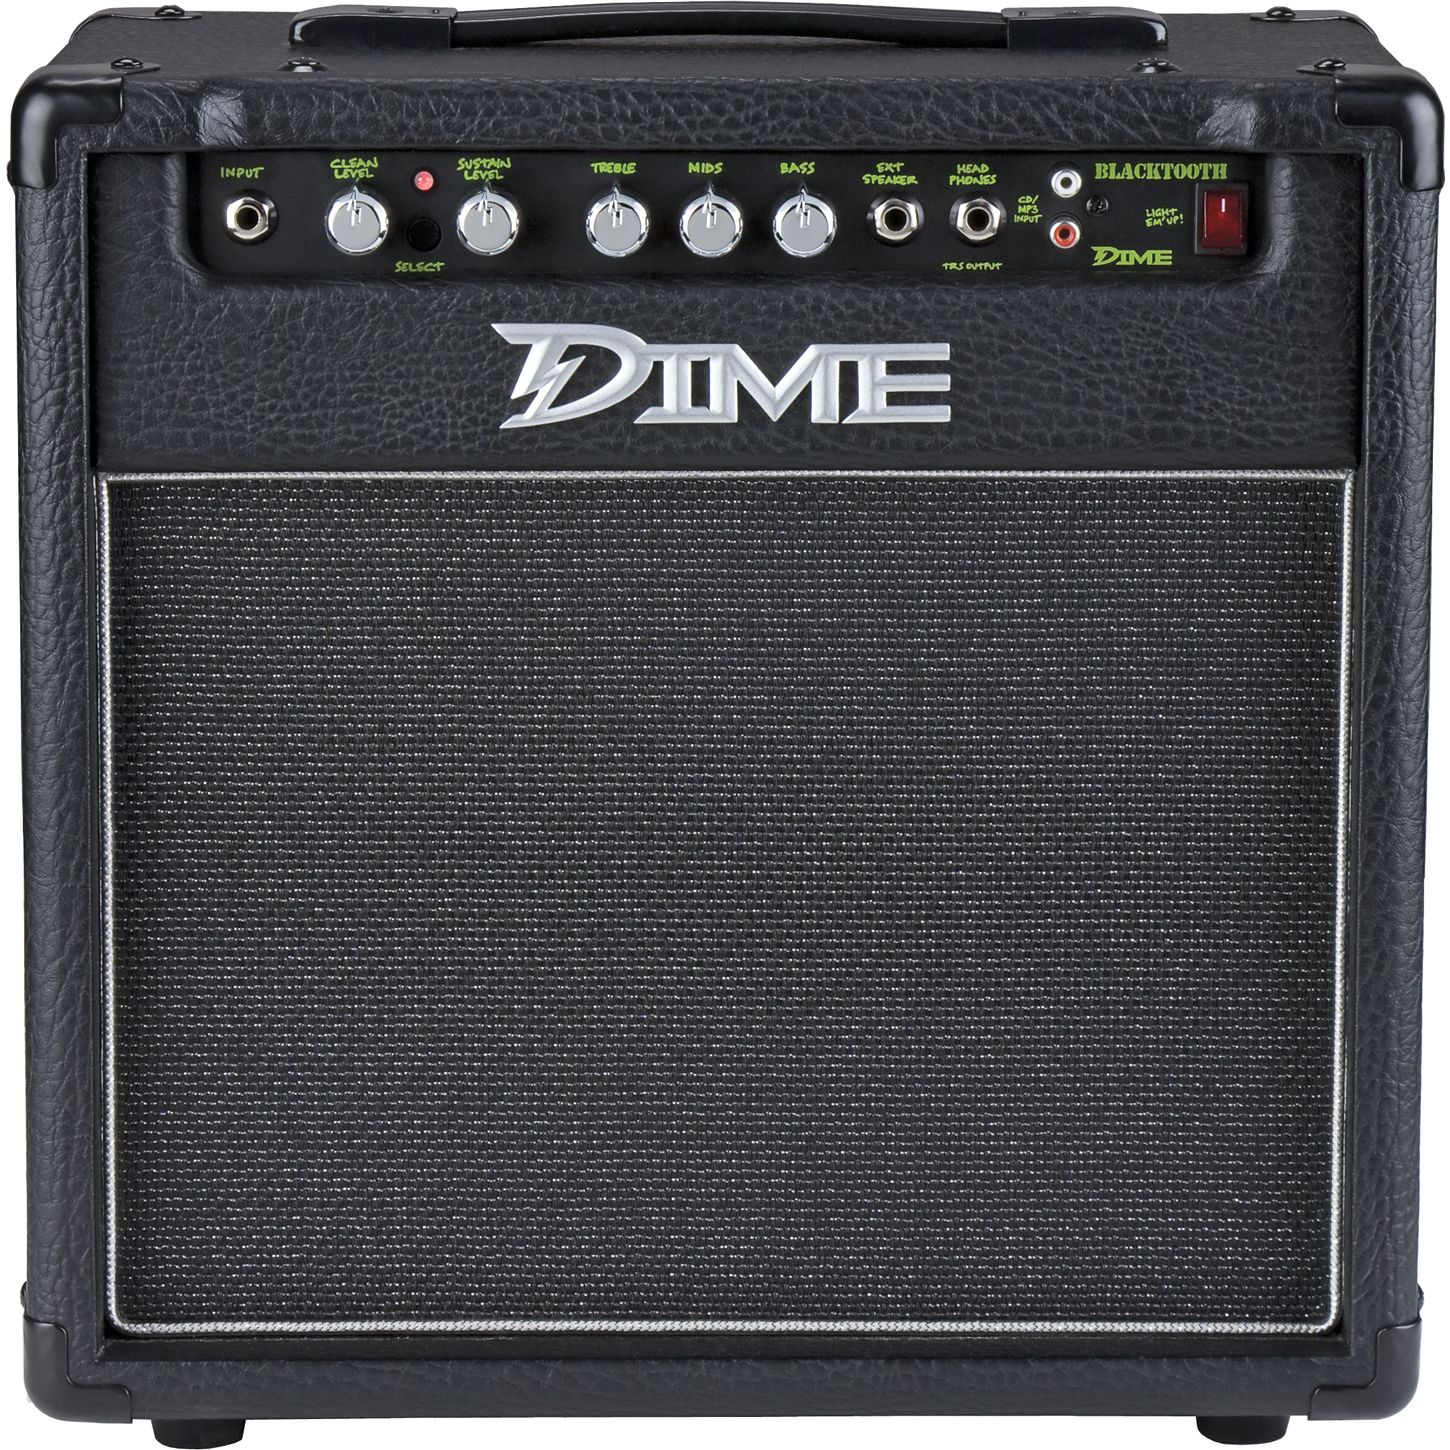 dime amplification dime blacktooth 20w 1x10 guitar combo amp musician 39 s friend. Black Bedroom Furniture Sets. Home Design Ideas